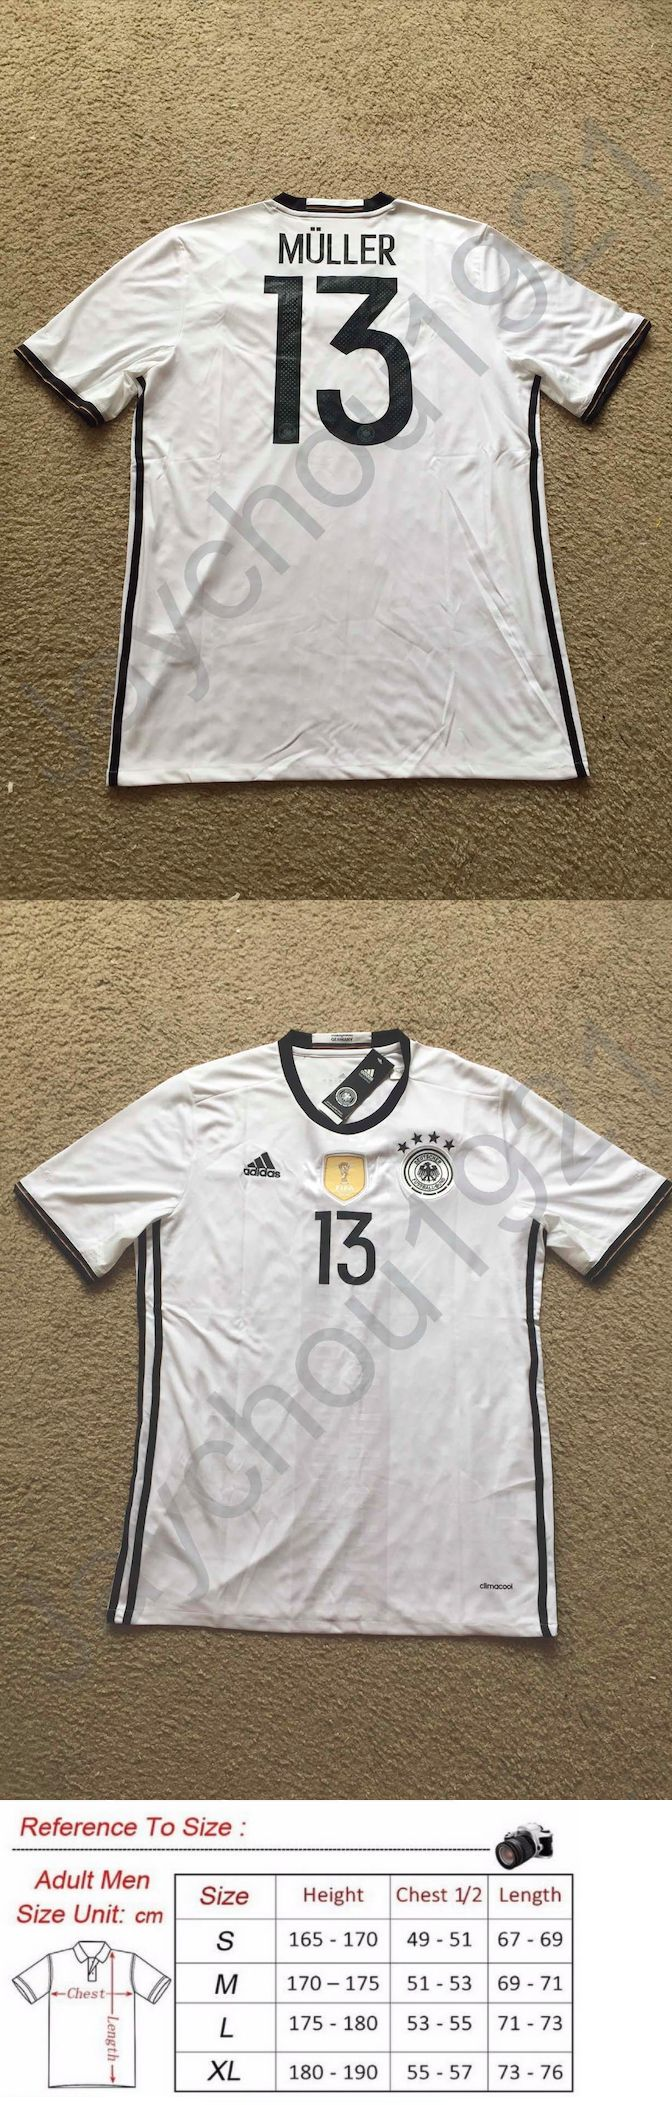 Soccer-National Teams 2891: Thomas Müller (Thomas Muller) Germany National Football Team Jersey Sz S-Xl Nwt -> BUY IT NOW ONLY: $32.49 on eBay!